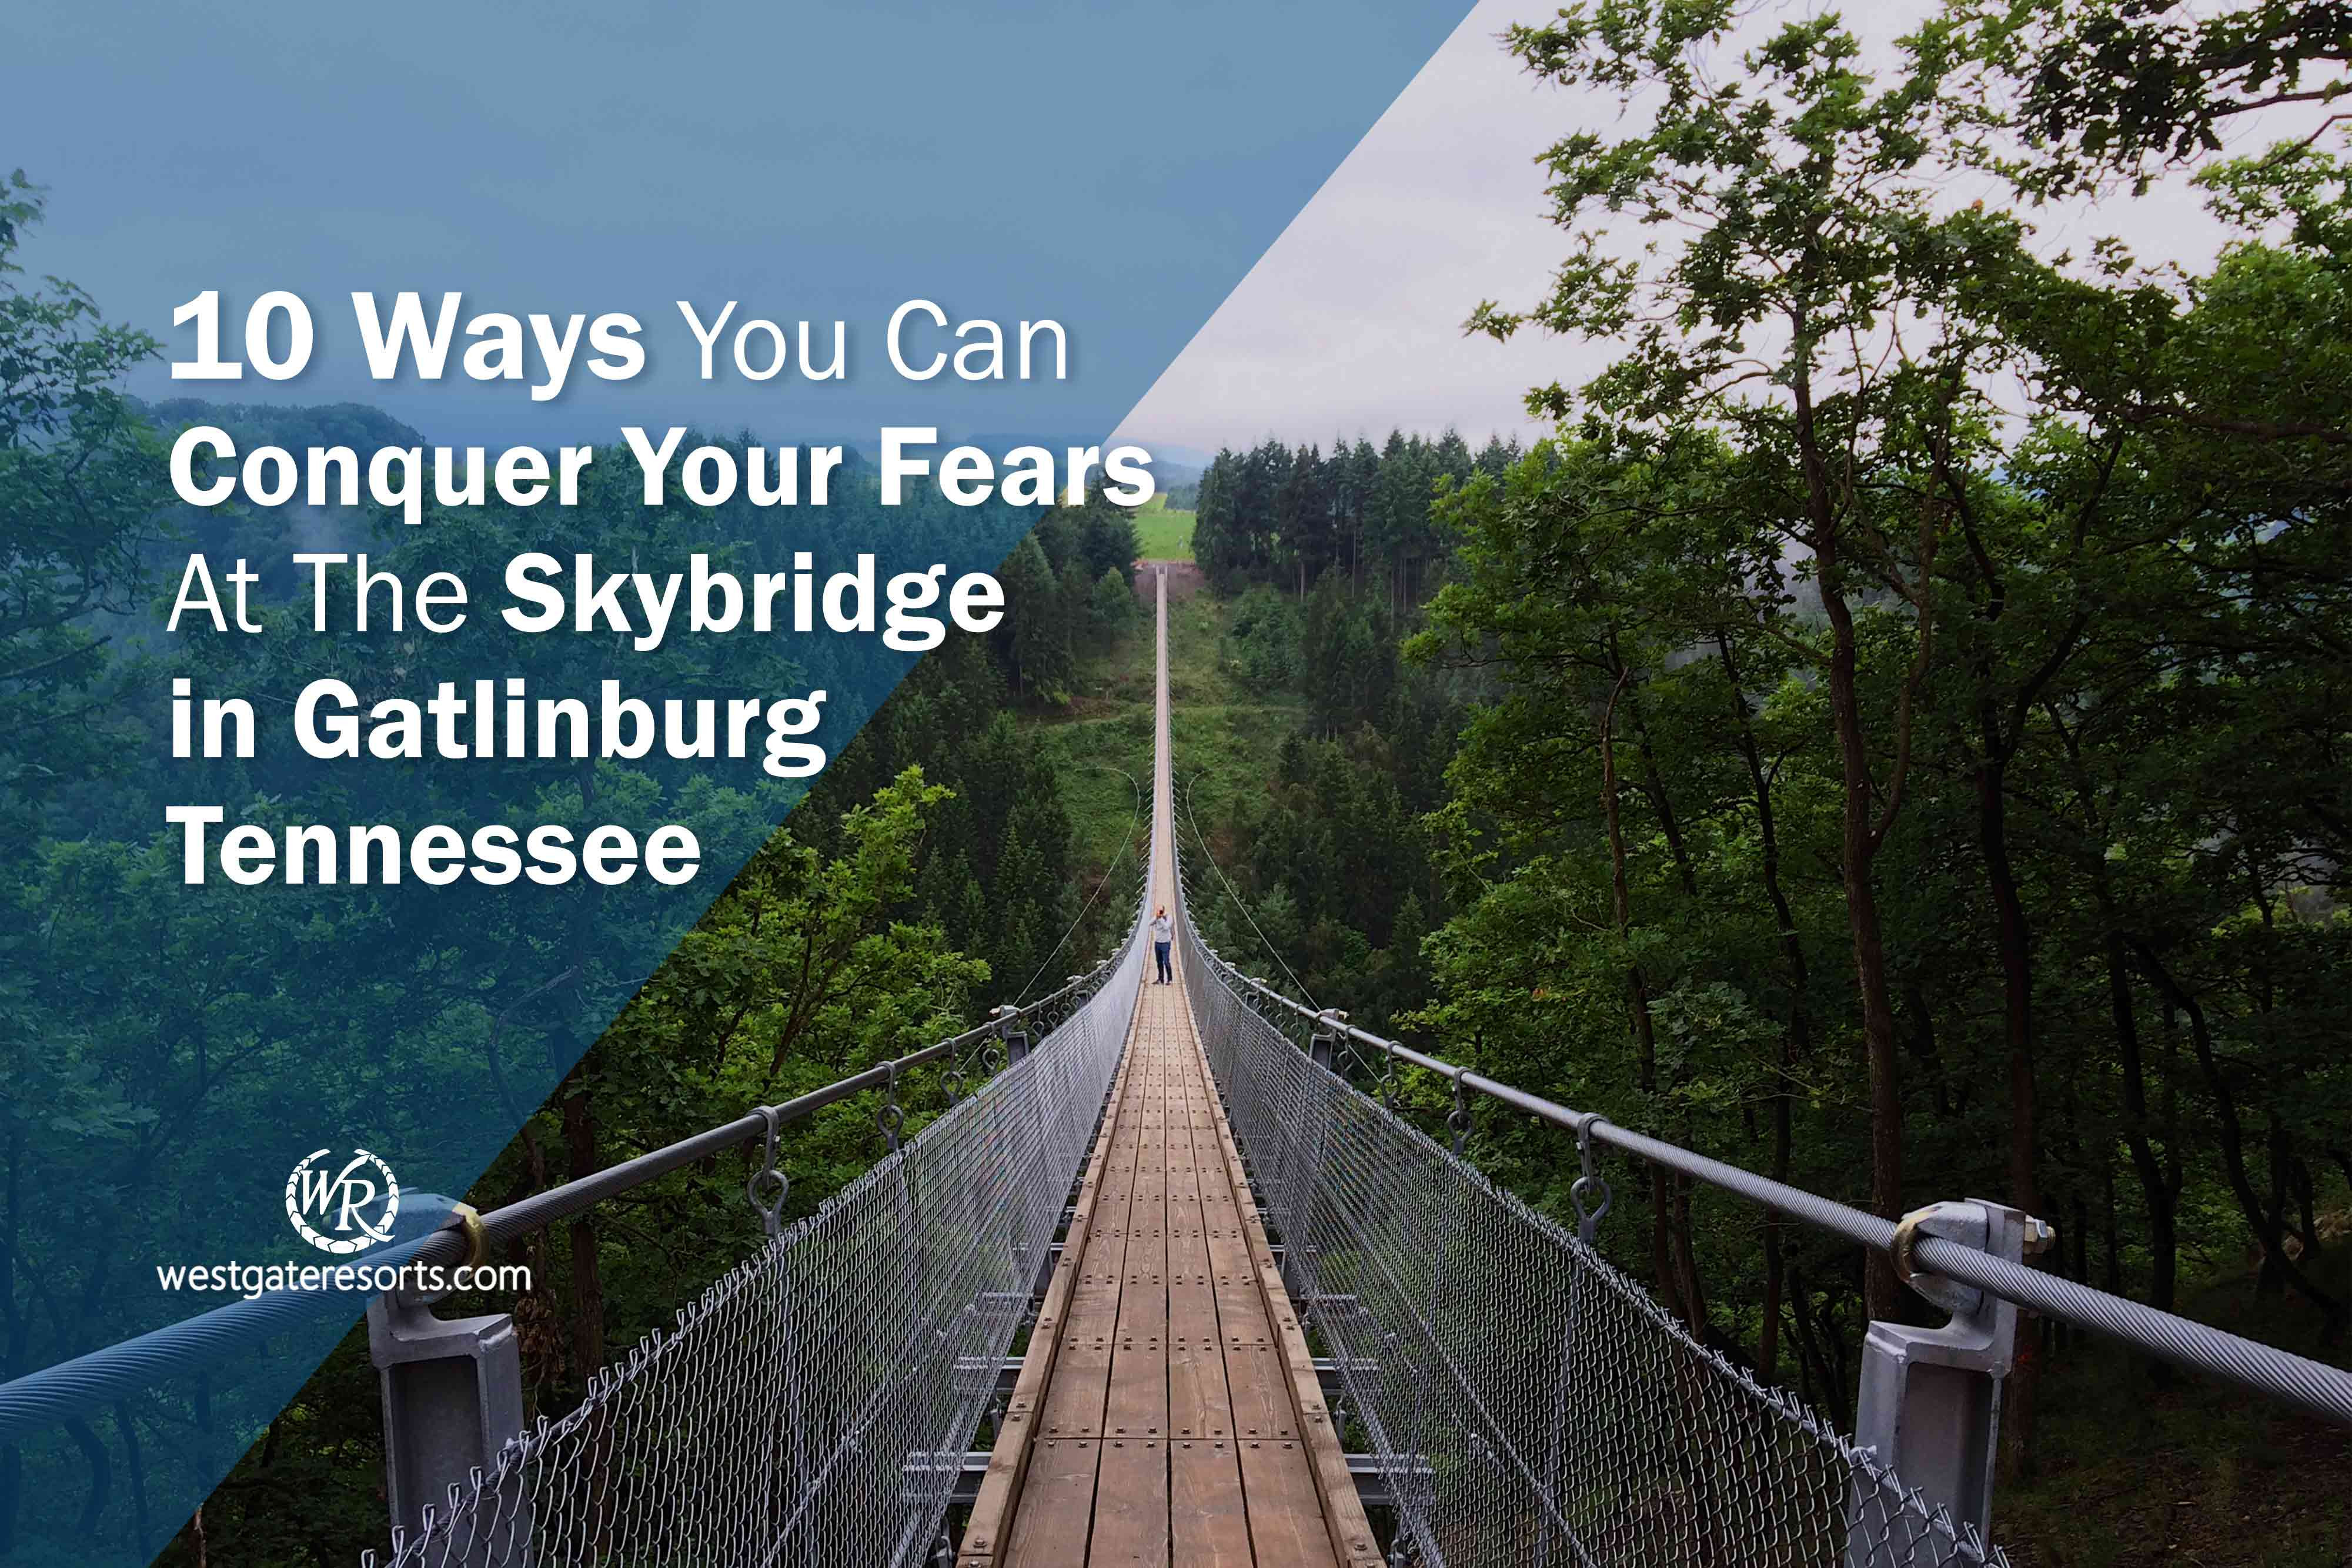 10 Ways You Can Conquer Your Fears At The Skybridge in Gatlinburg Tennessee